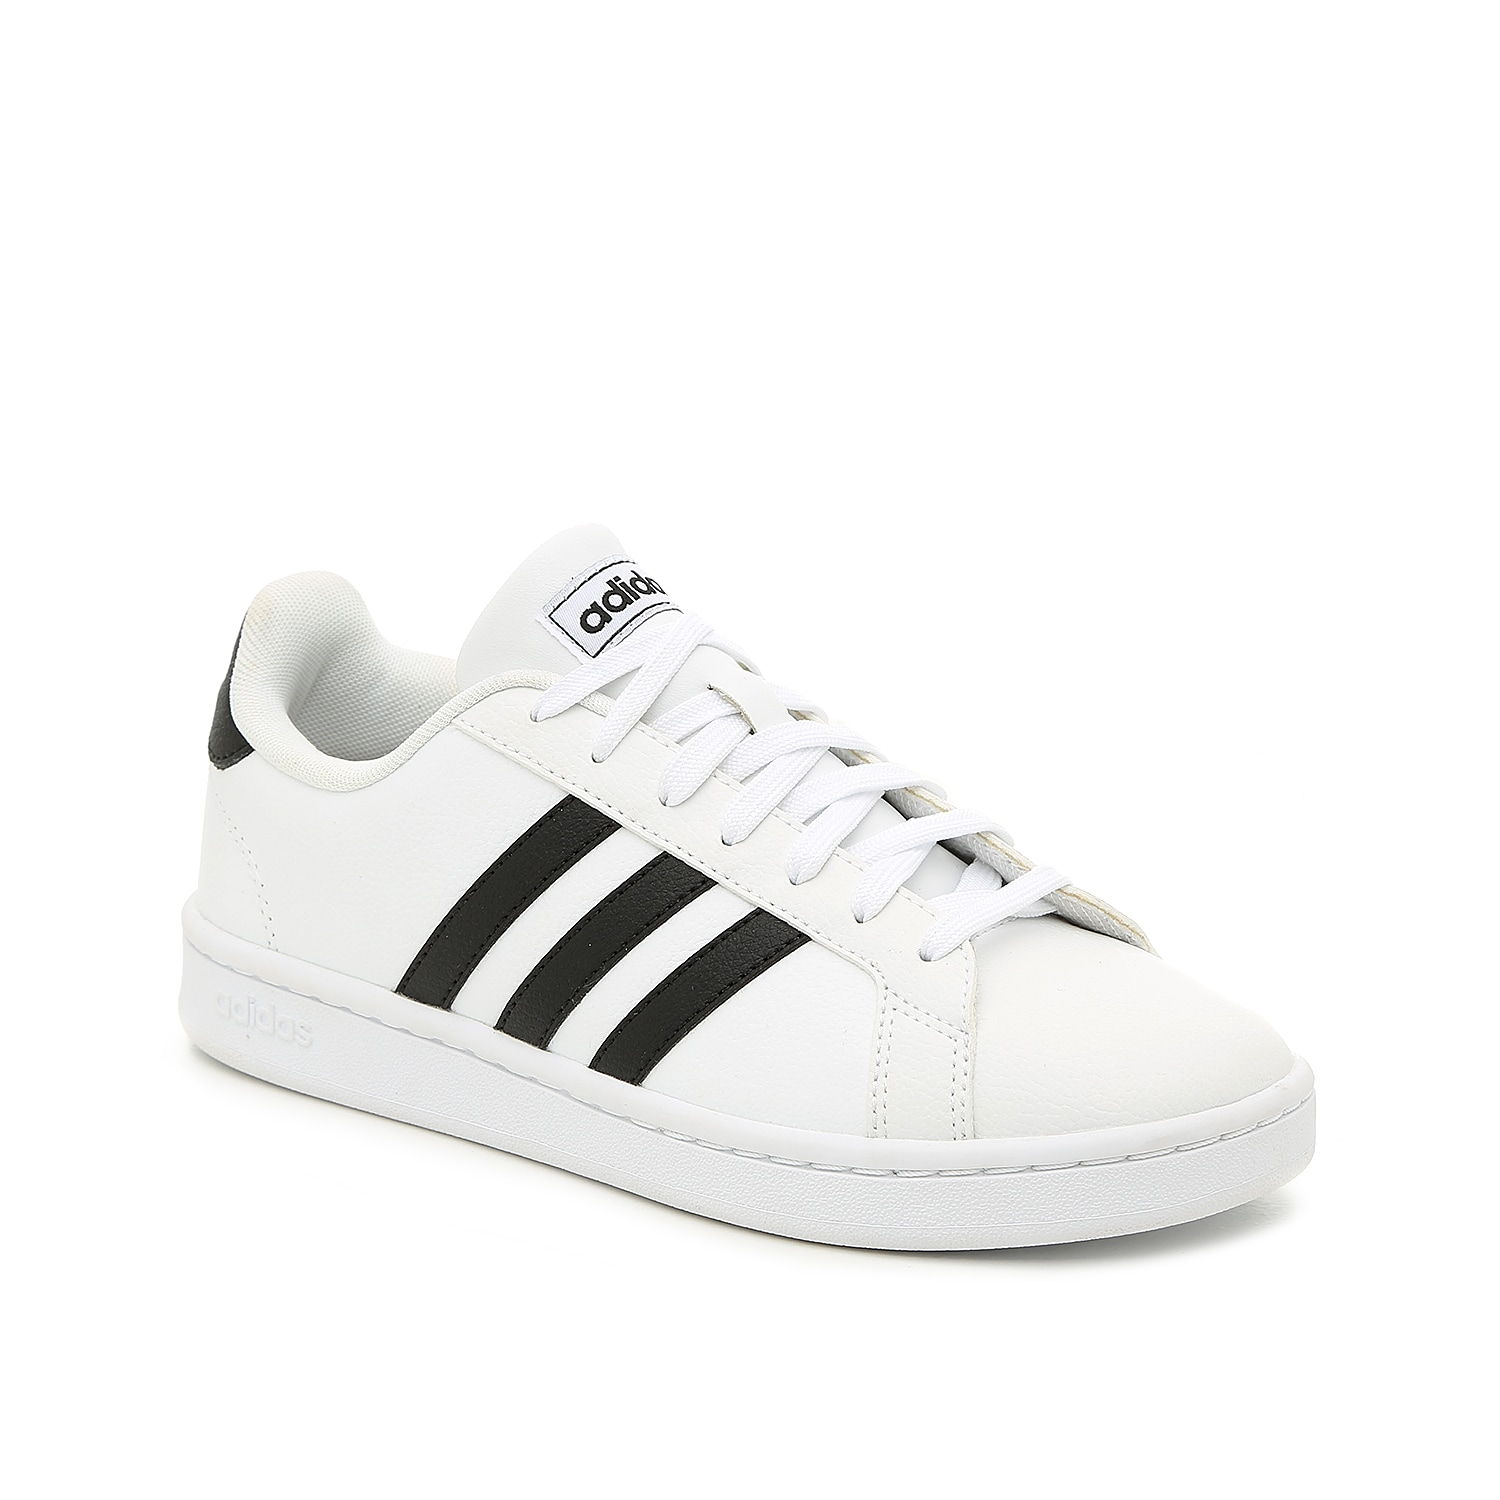 Show off your favorite athleisure trend with the women\\\'s Grand Court sneaker from adidas. This low-top sneak features the three iconic black stripes and classic design that will pair perfectly with leggings and a cropped crew neck sweatshirt!